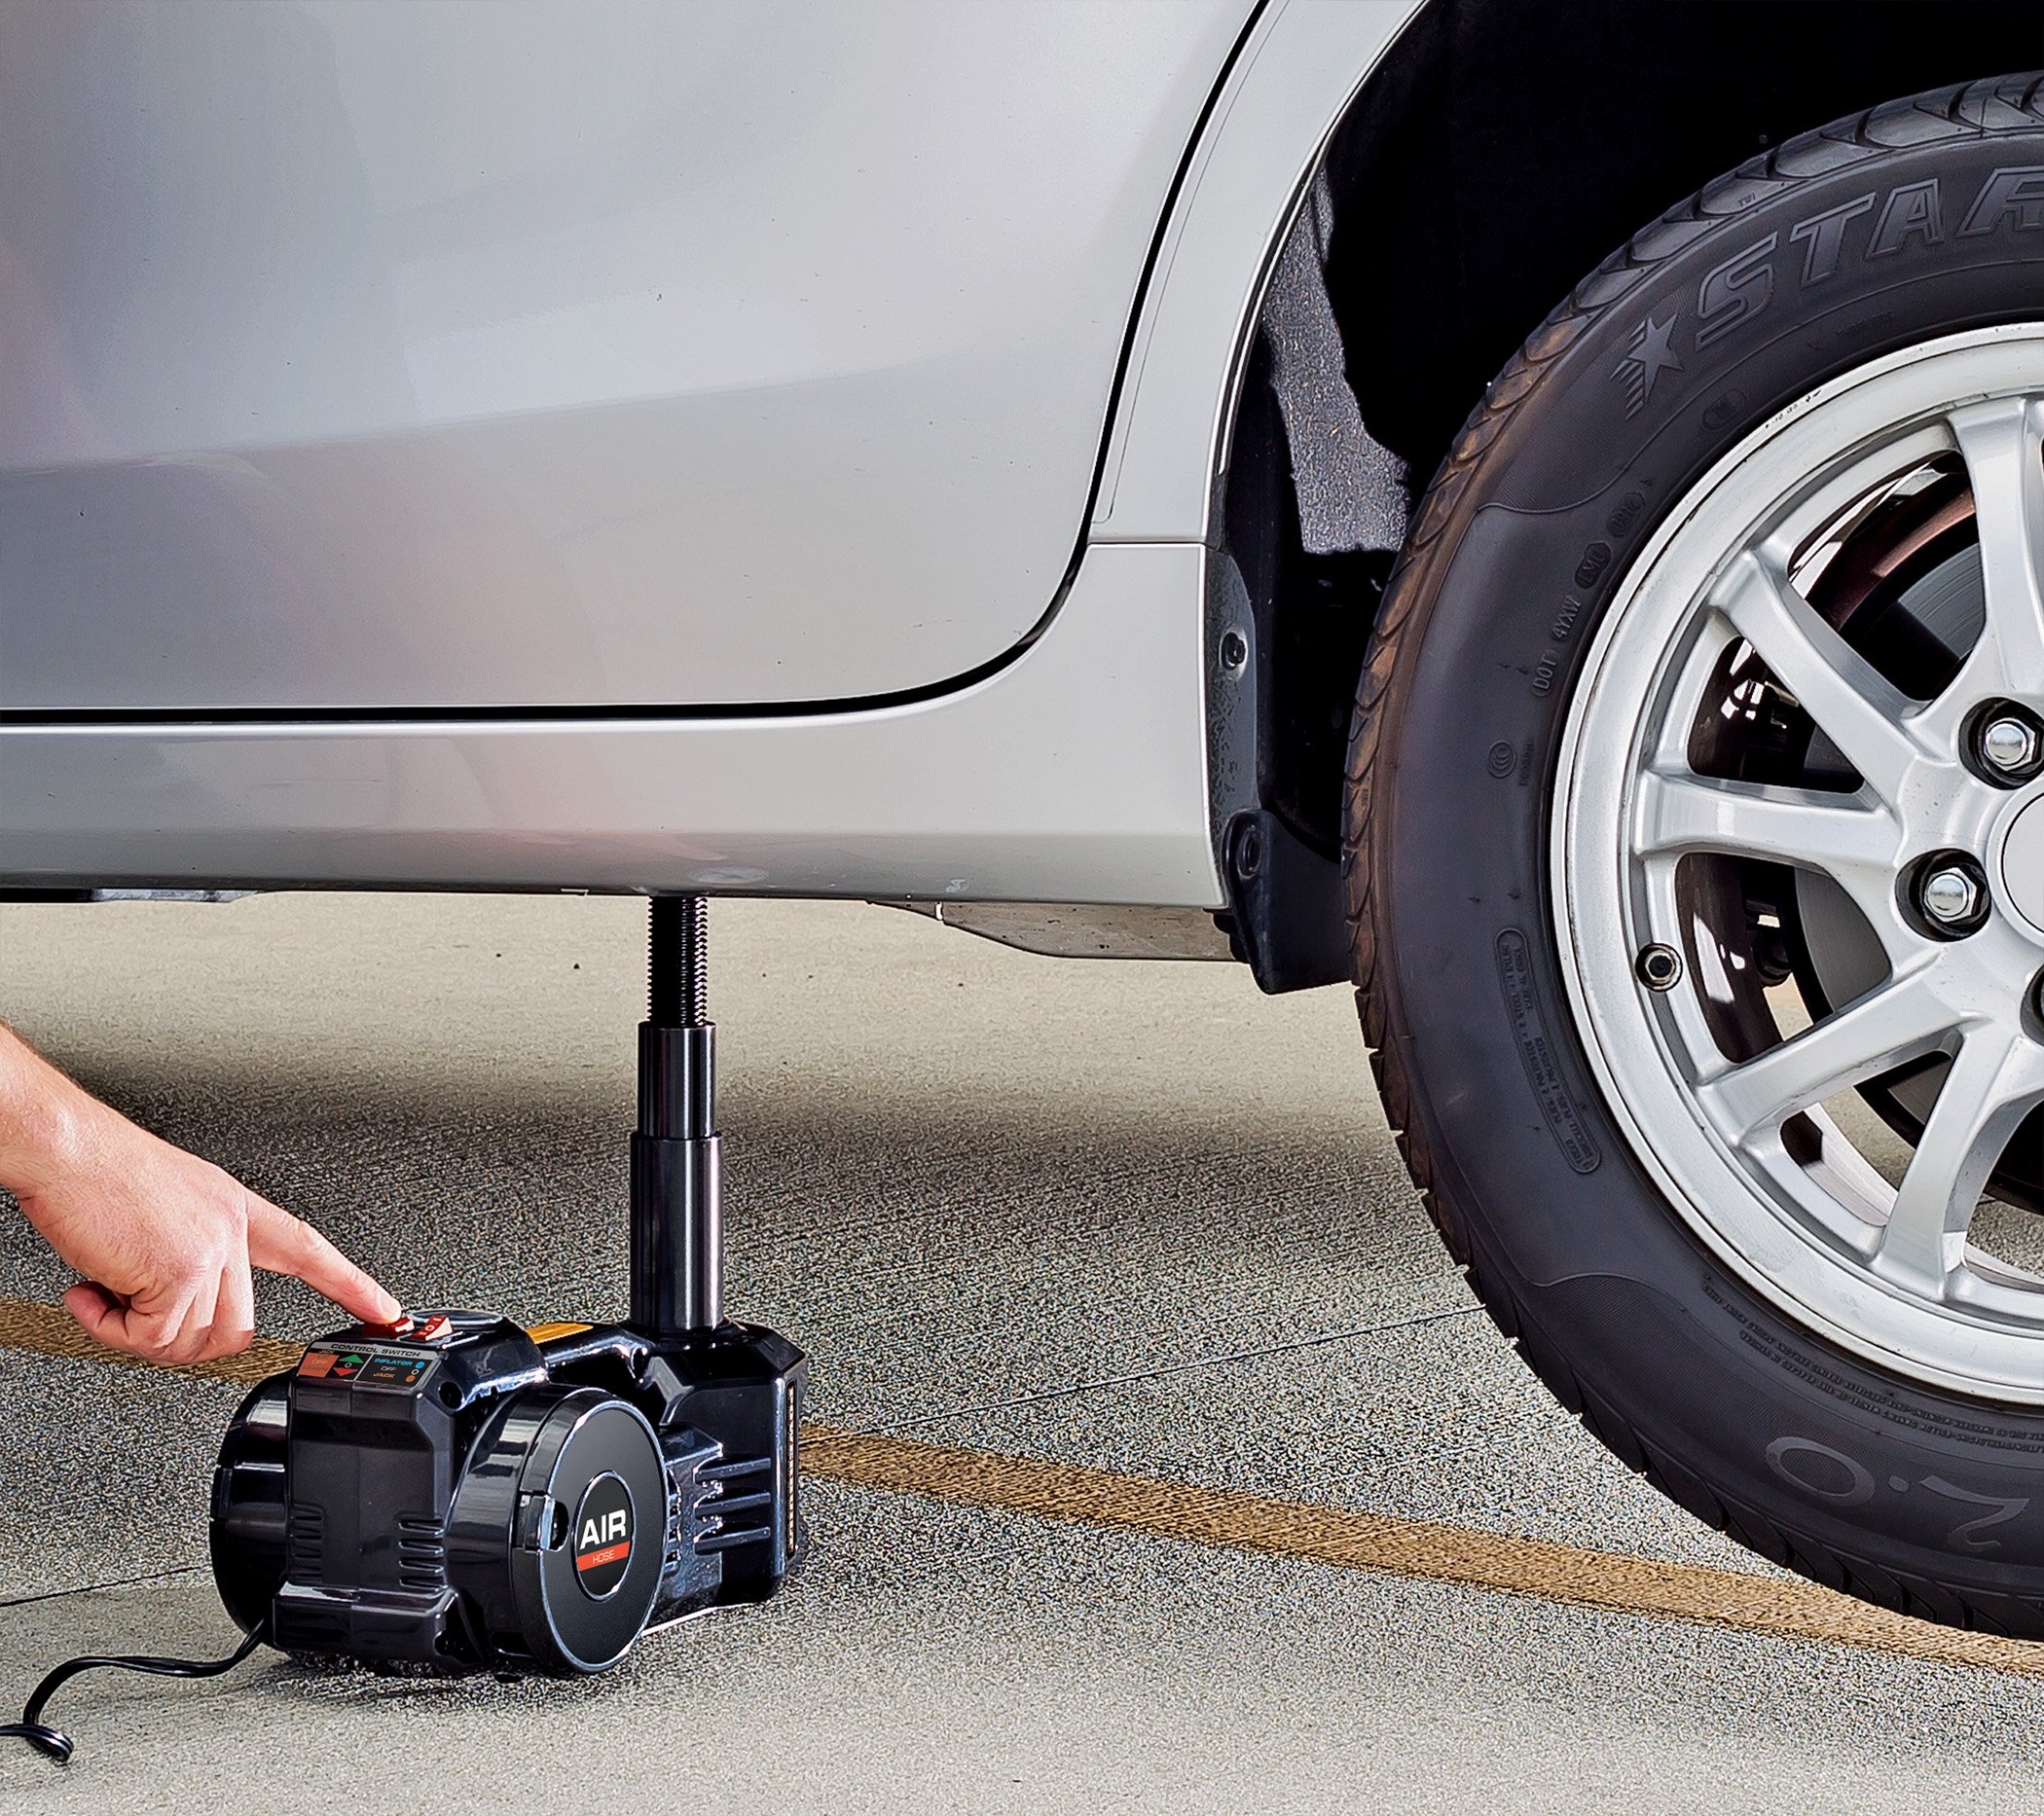 Powerbuilt 620484 12V Electric Jack and Tire inflator by Powerbuilt (Image #4)